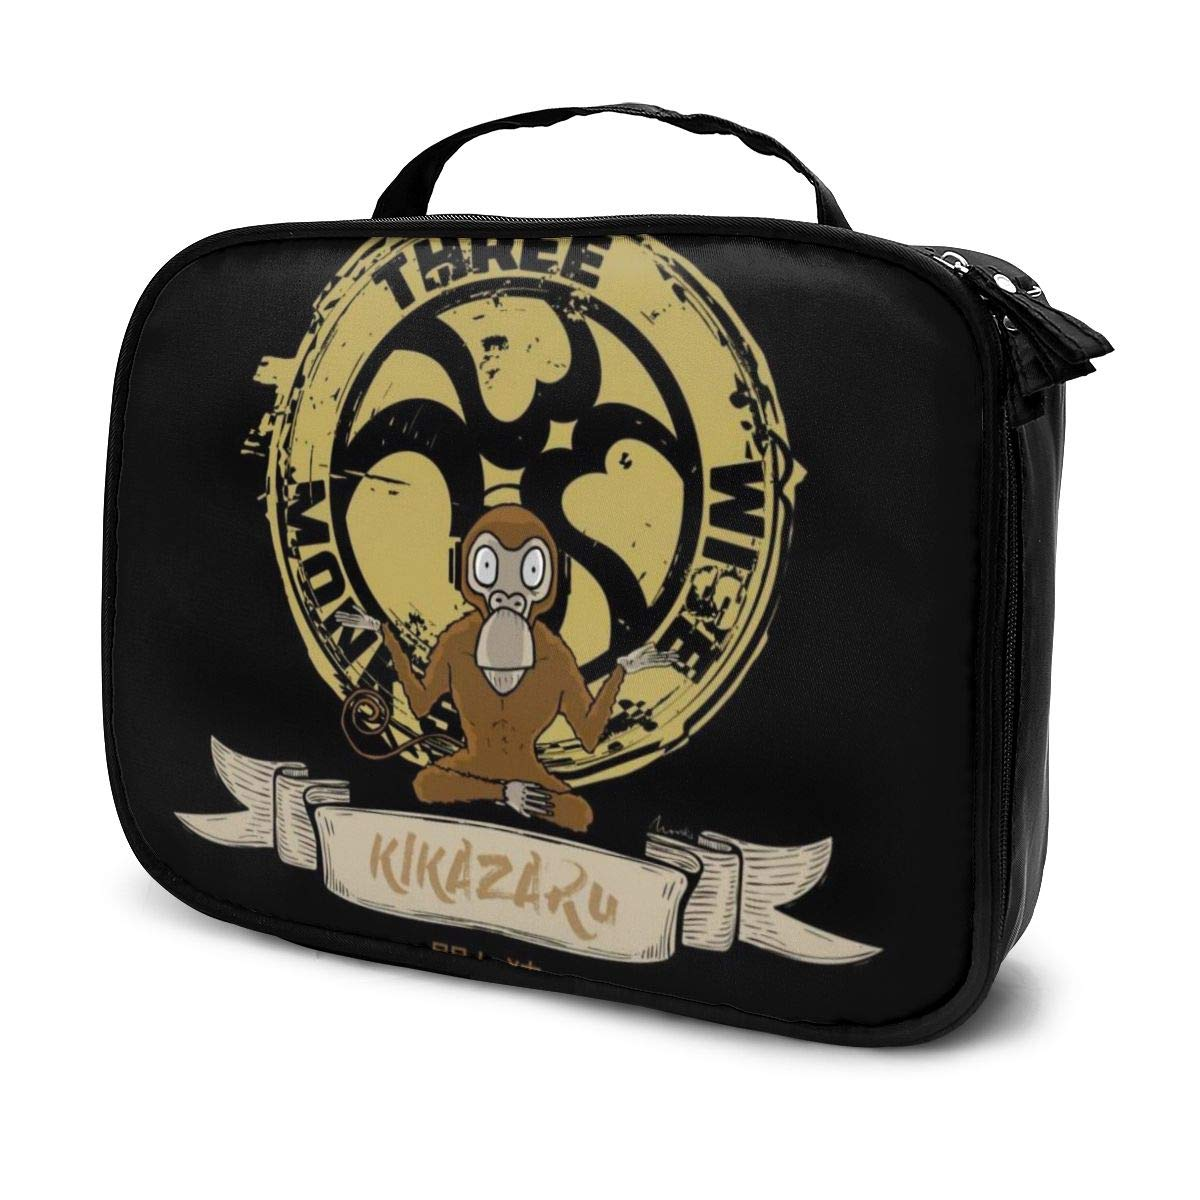 Multi-Functional Bag With Compartments Three Wise Monkeys Kikazaru Professional Cosmetic Pouch Travel Kit Makeup Boxes Makeup Bag